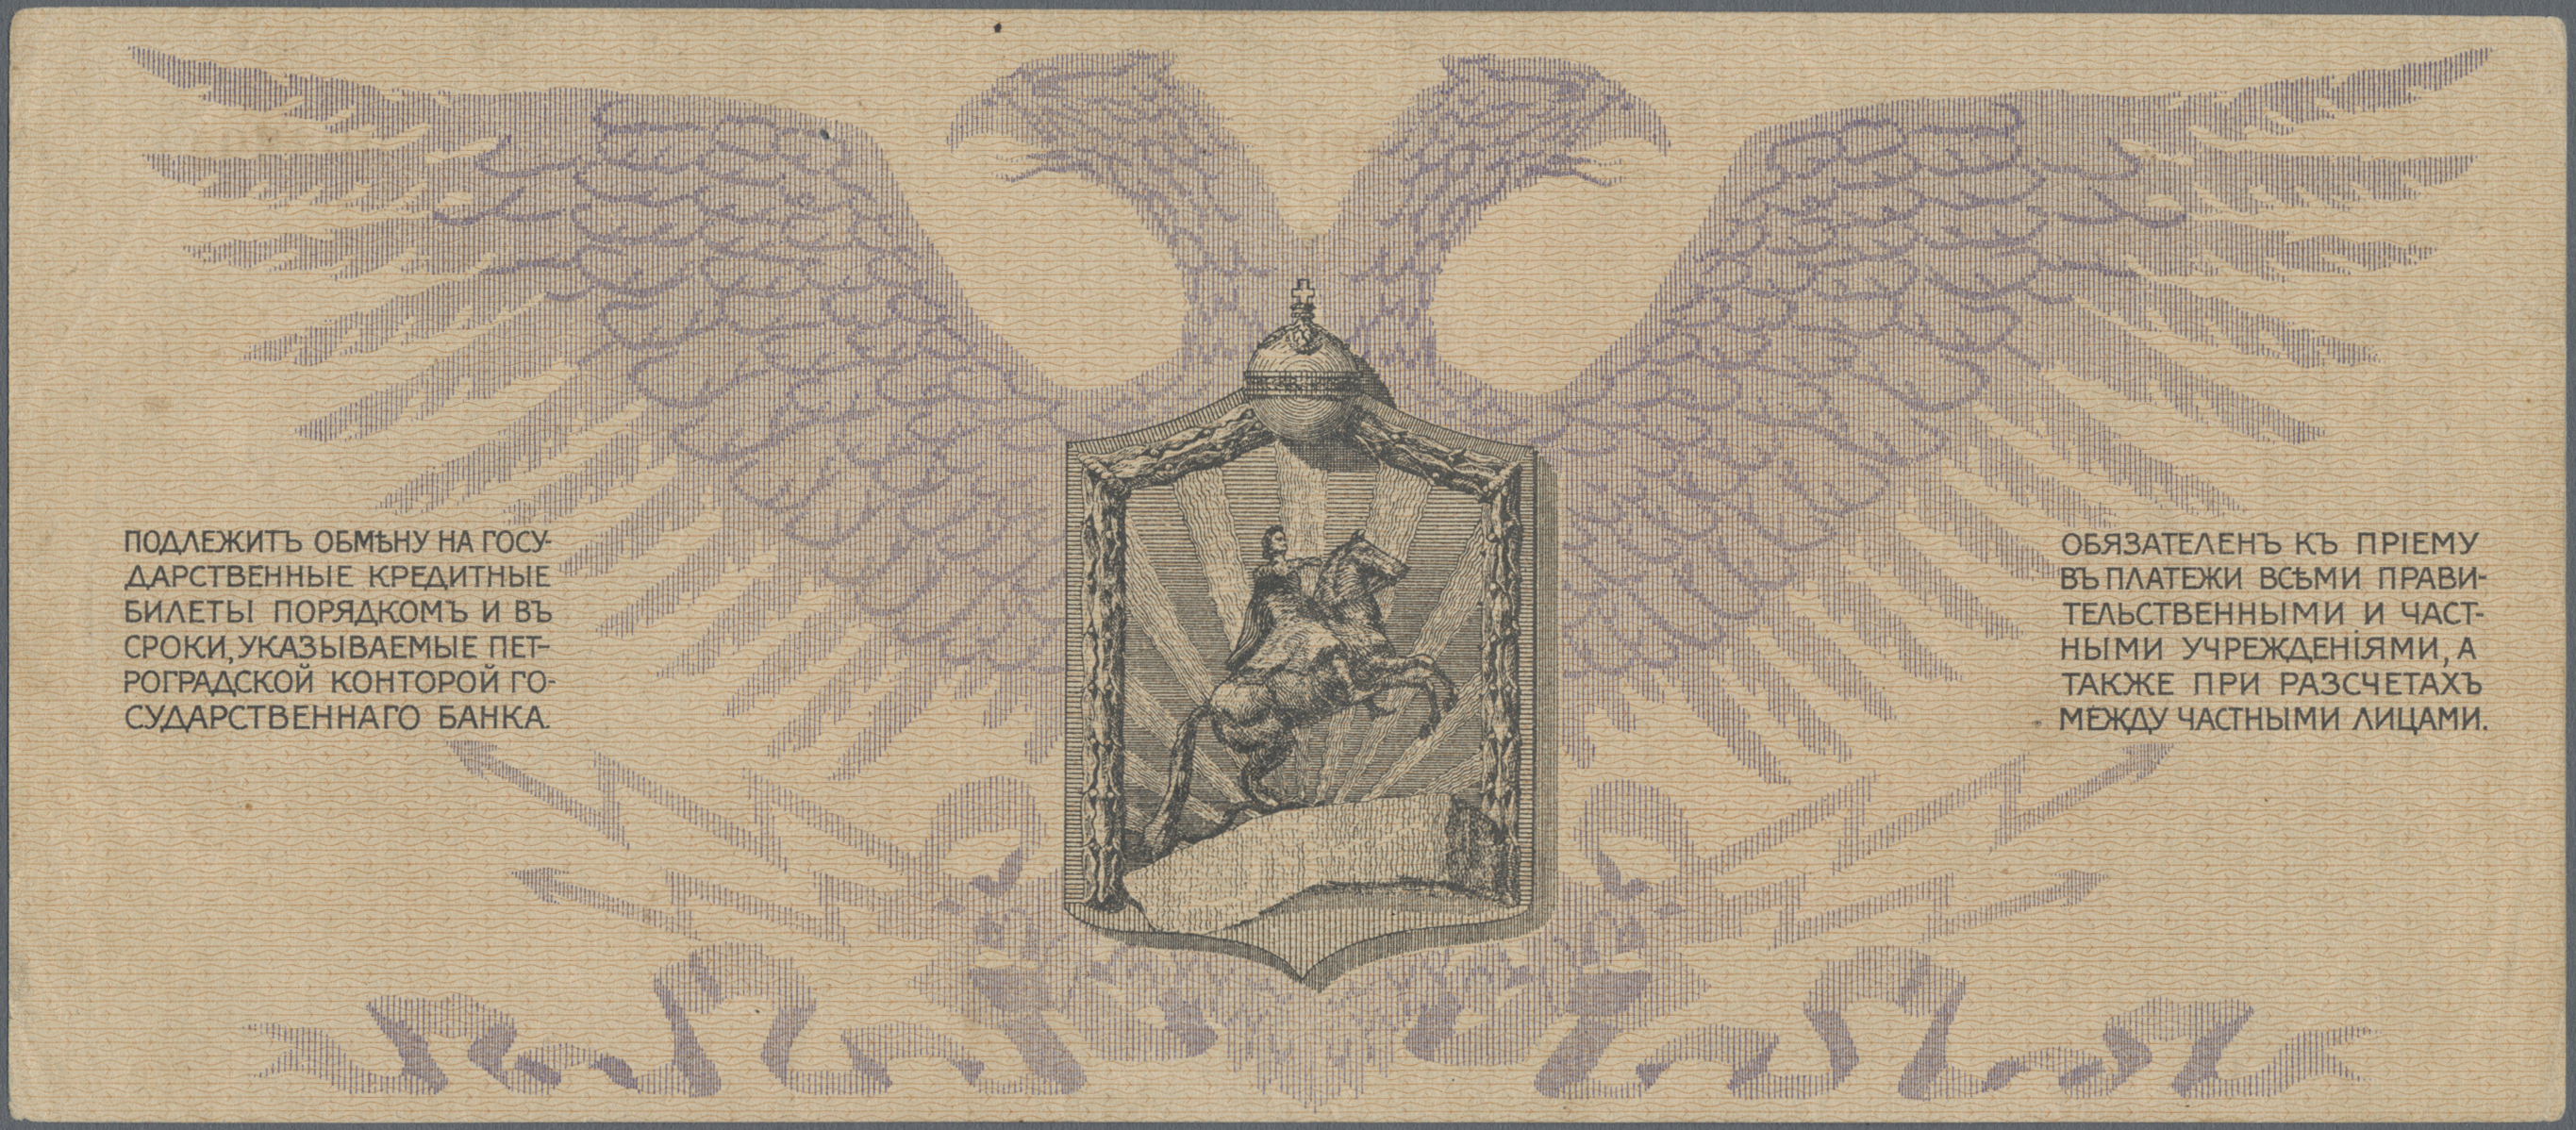 Lot 00662 - Russia / Russland   Banknoten  -  Auktionshaus Christoph Gärtner GmbH & Co. KG Sale #48 The Banknotes